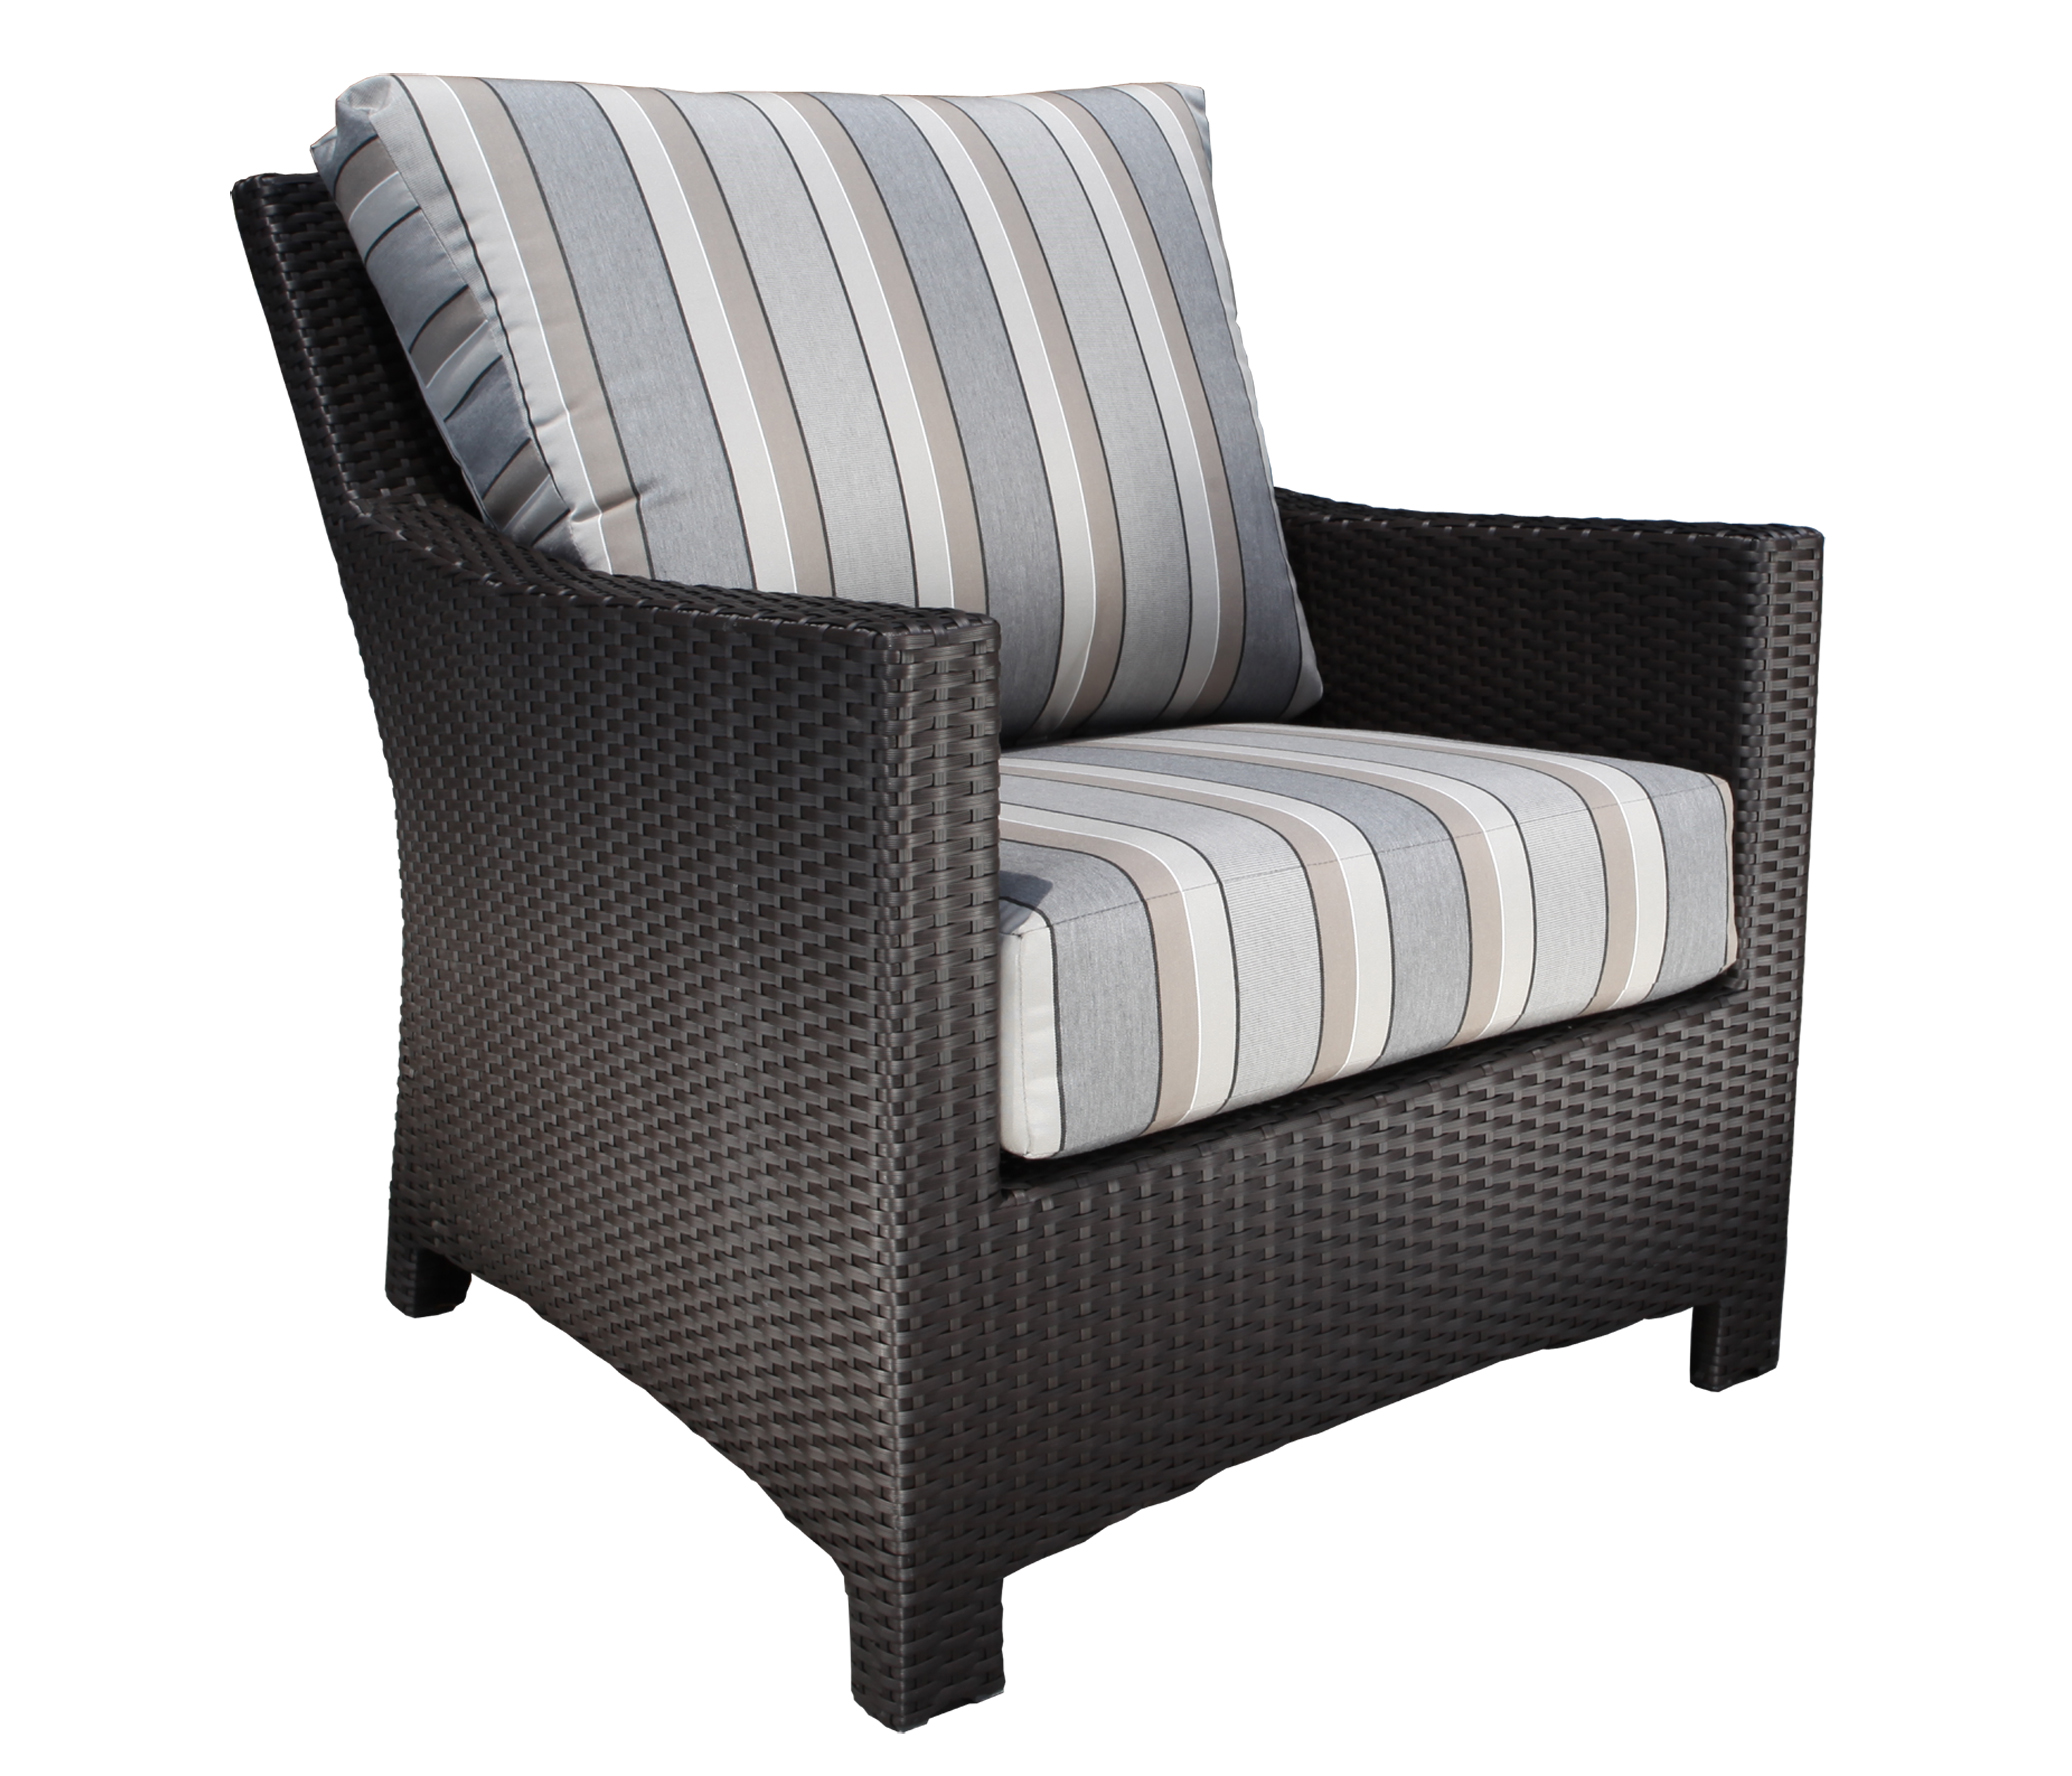 resin lounge chair lawn chairs at home depot flight wicker deep seating patio furniture sun